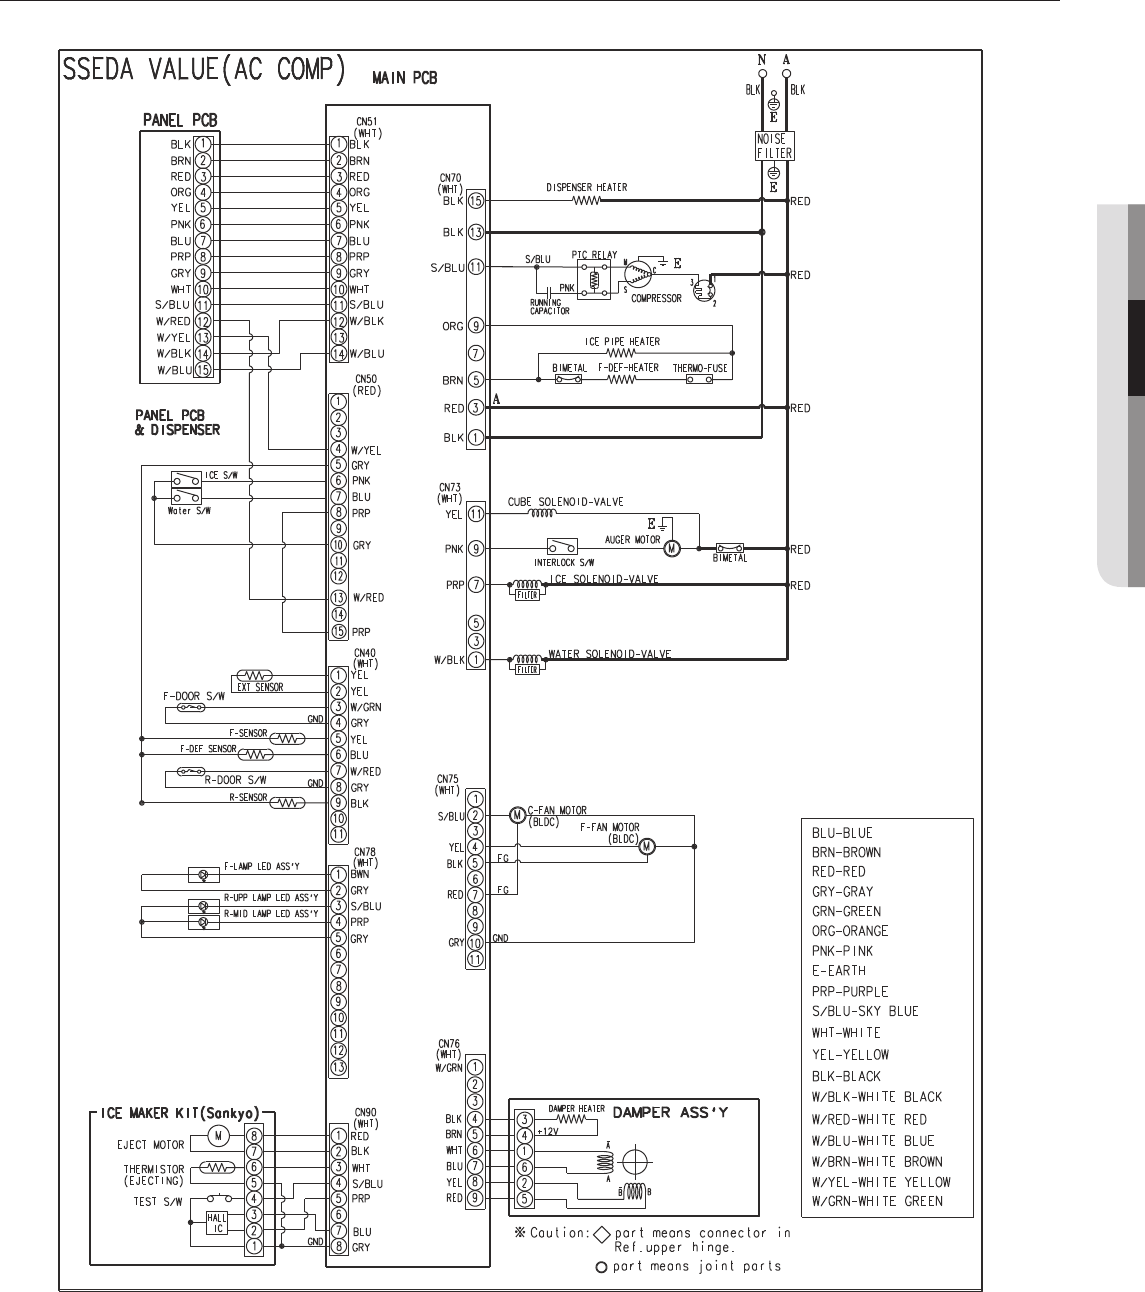 21aa6212 5c03 4539 ac02 99a0885d5c5e bg1f page 31 of samsung refrigerator rs261mdwp user guide samsung wiring diagram at soozxer.org